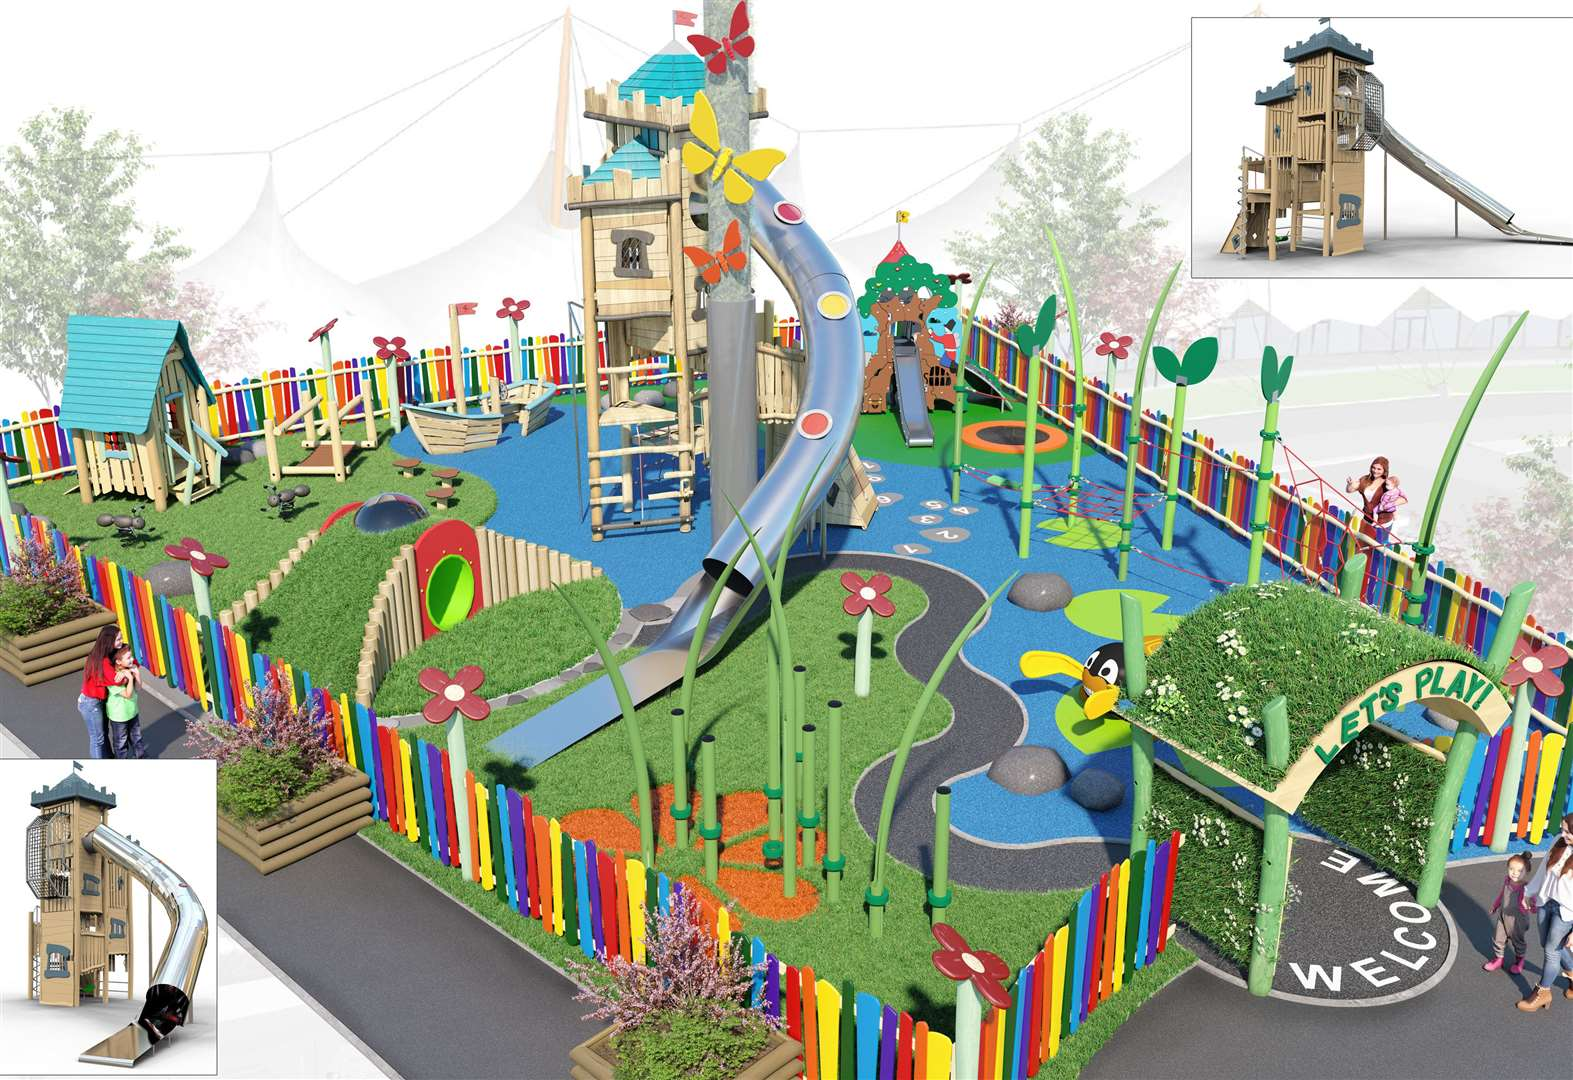 Treehouse play area to open in May